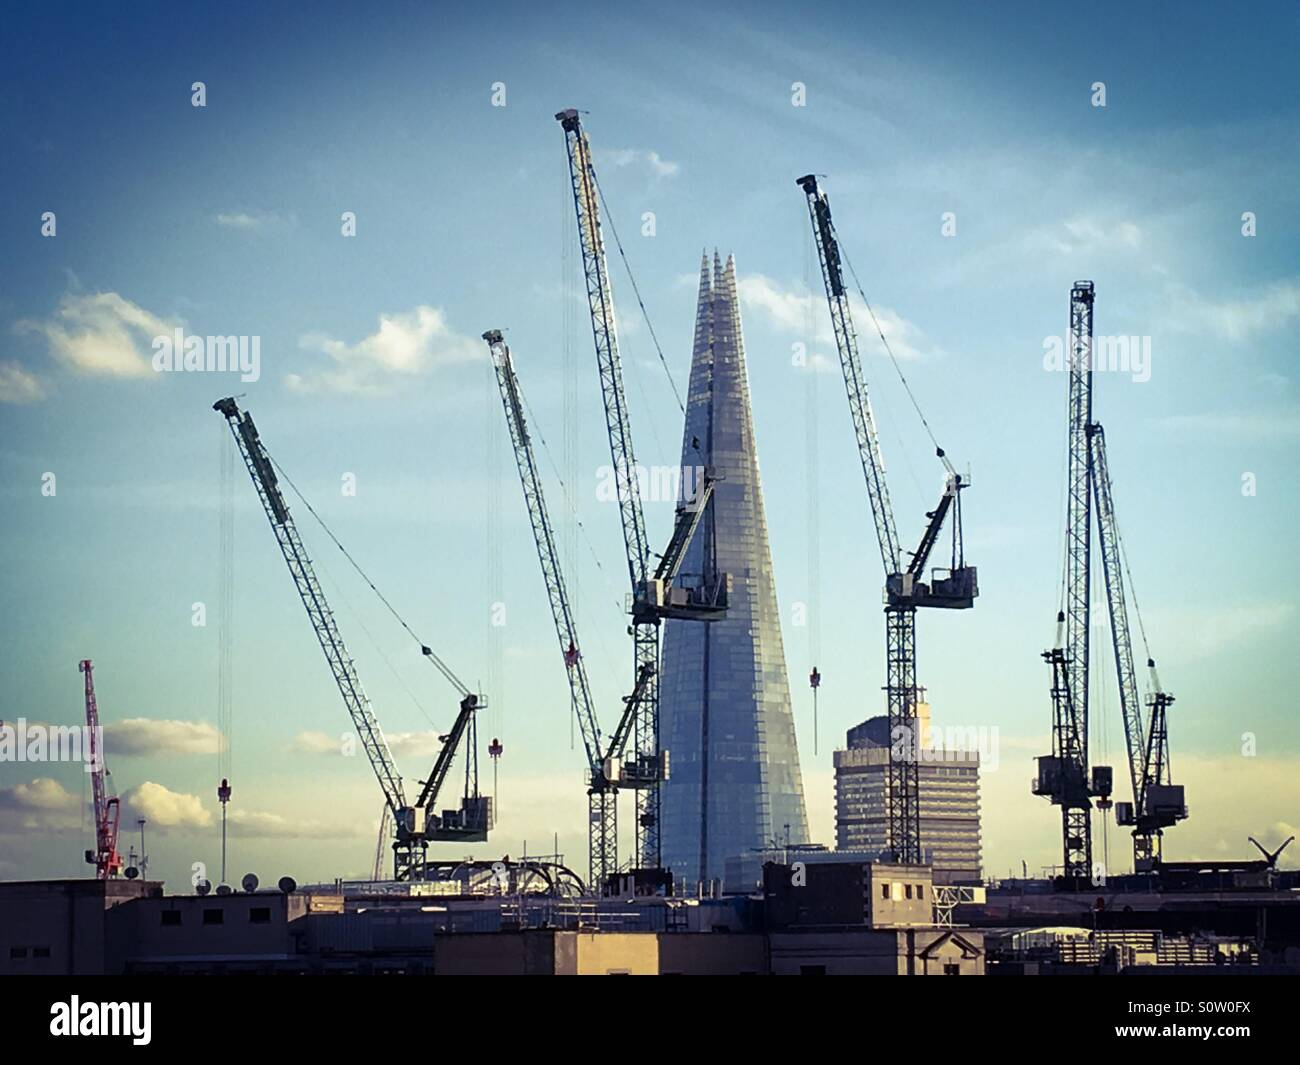 shard-with-cranes-in-front-london-S0W0FX